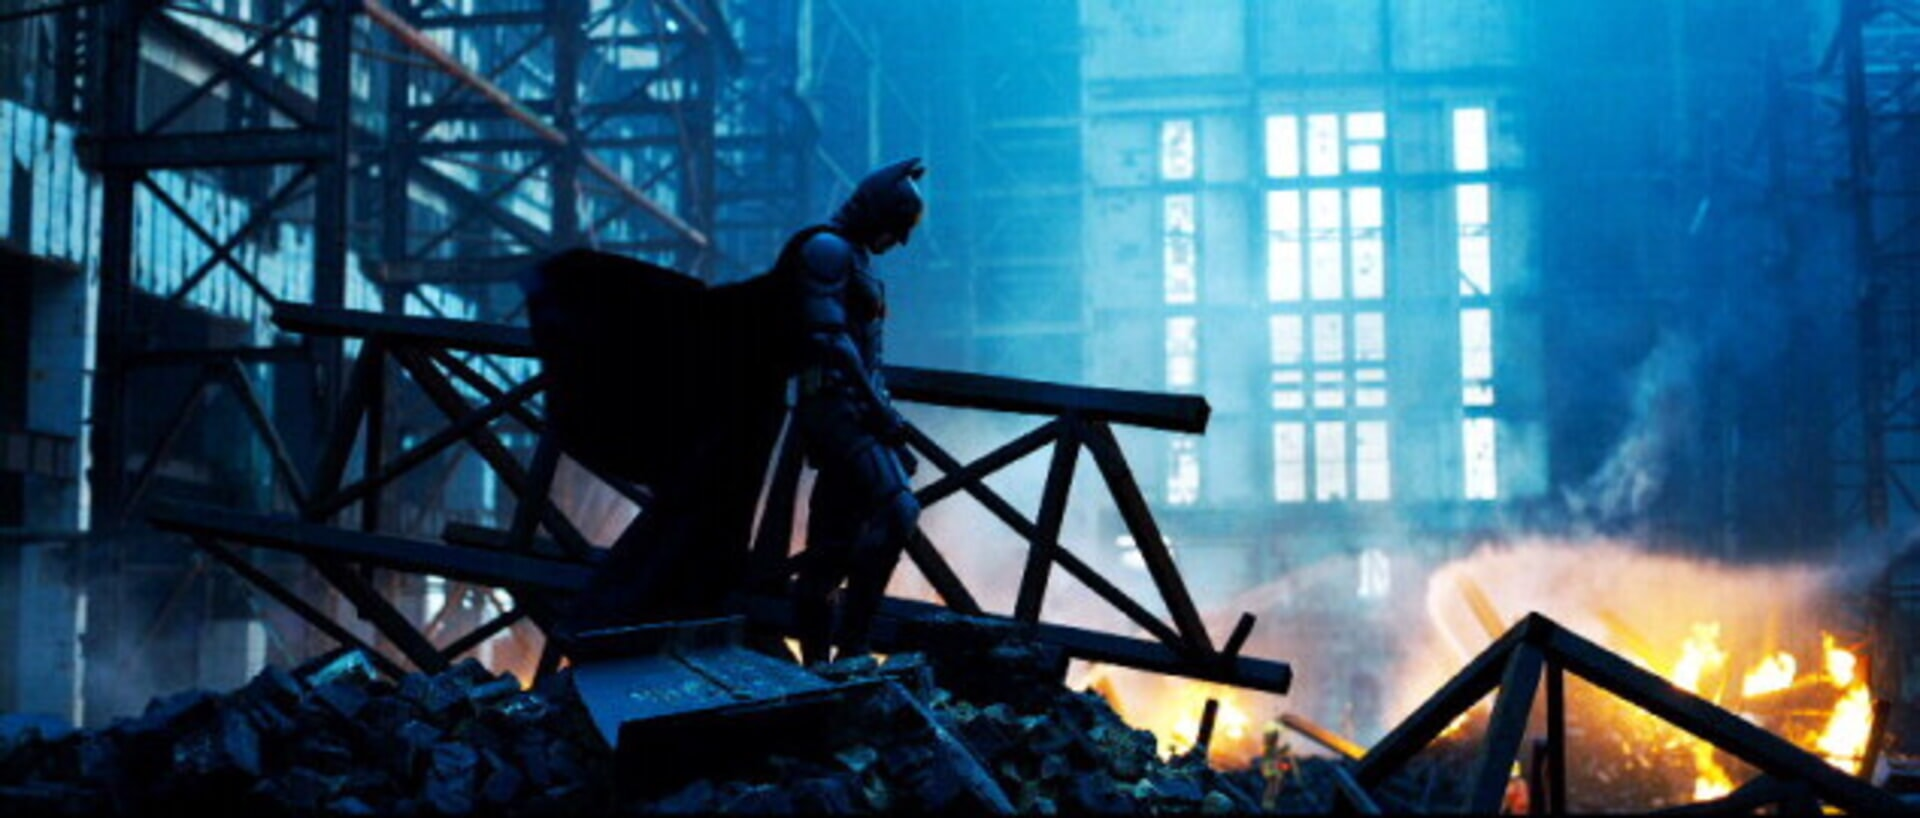 The Dark Knight - Image 5